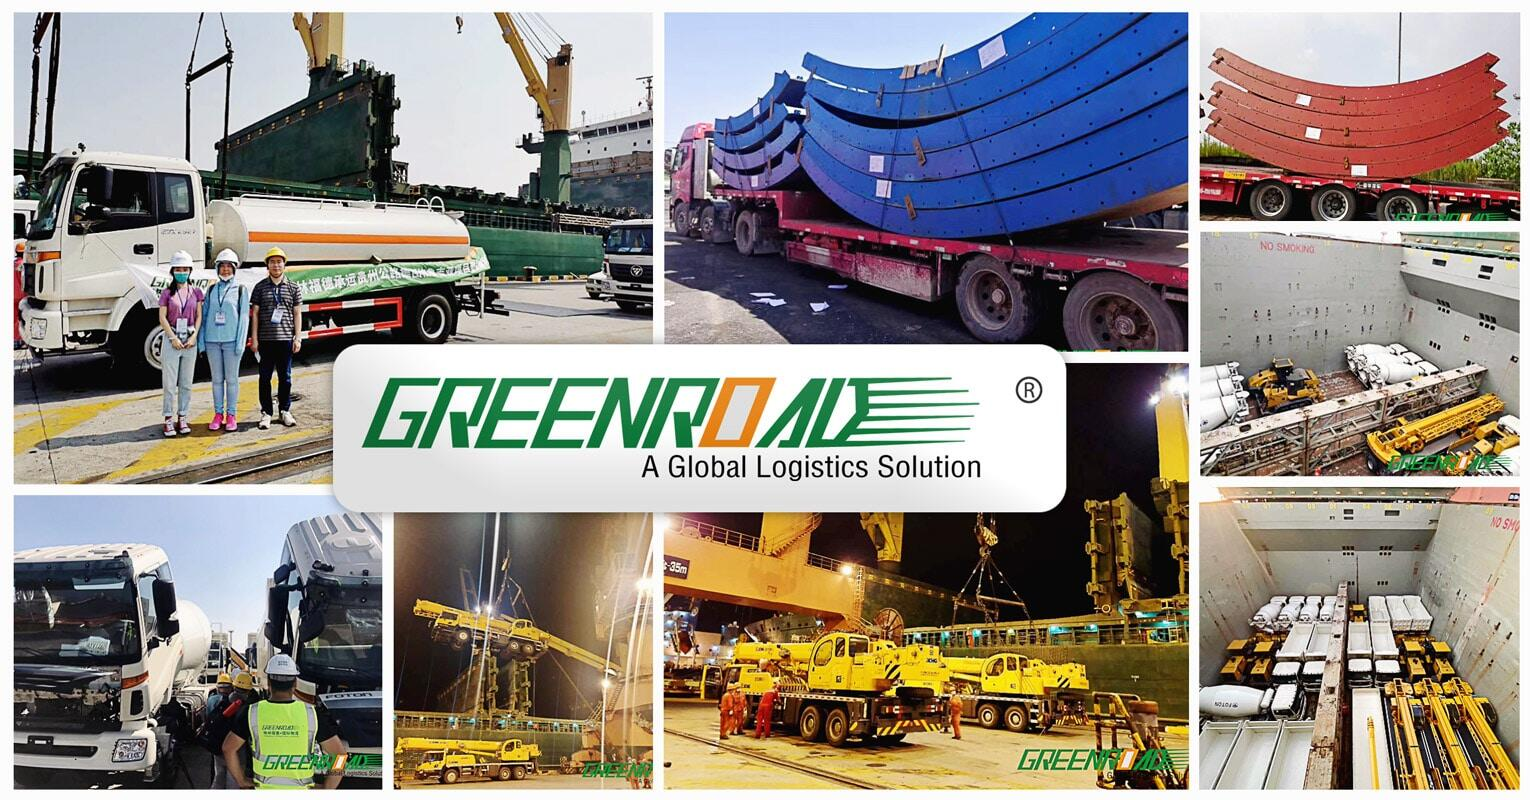 Greenroad Handles 4500 CBM o f Vehicle Equipment and Steel Structures